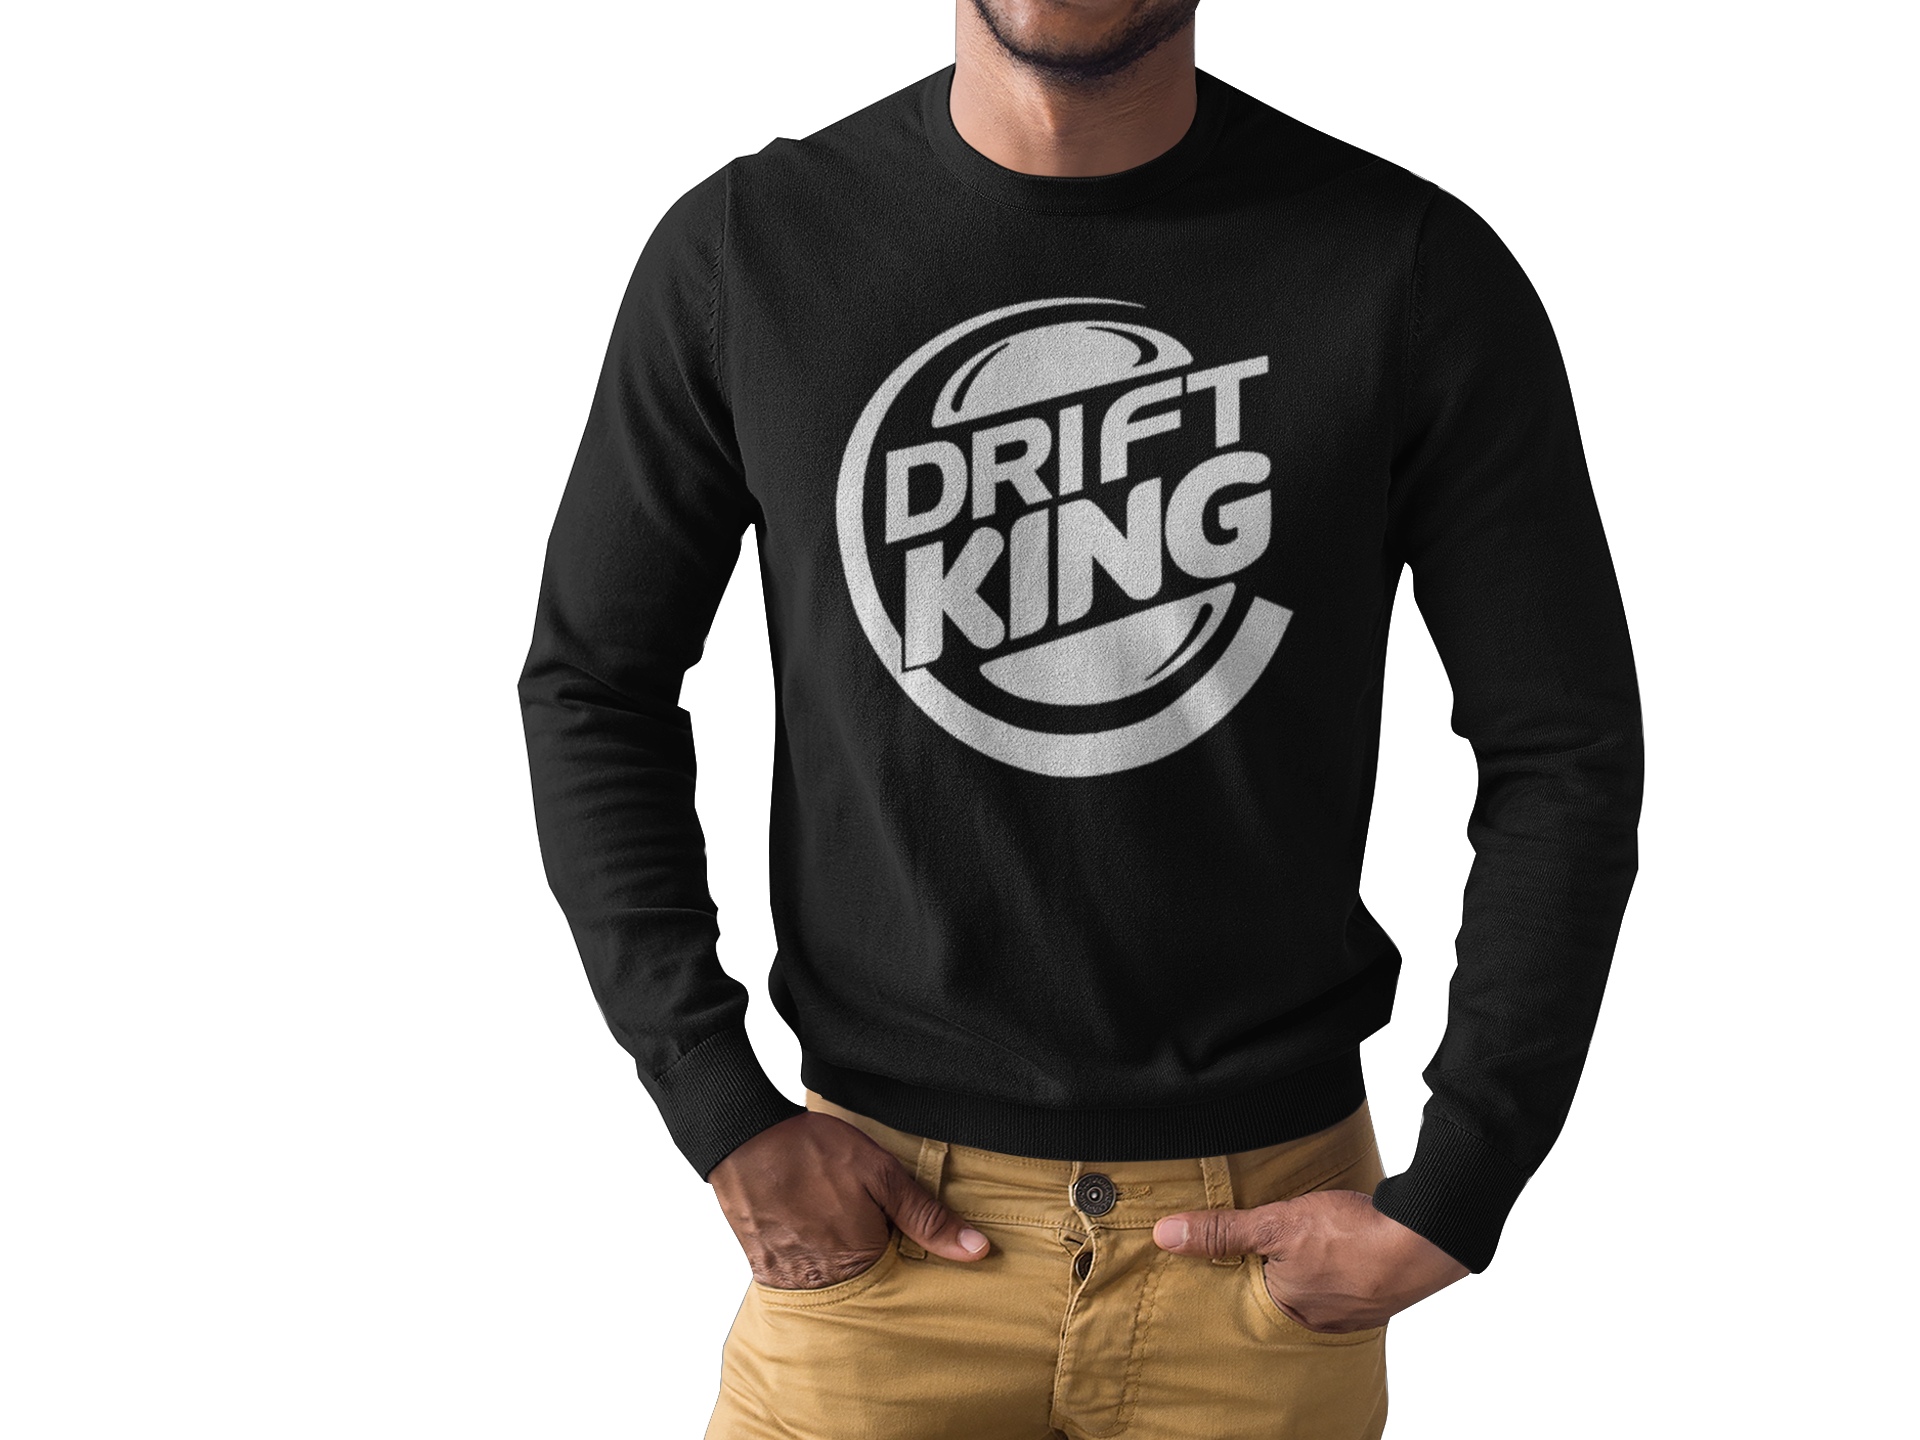 Drift King Long Sleeve